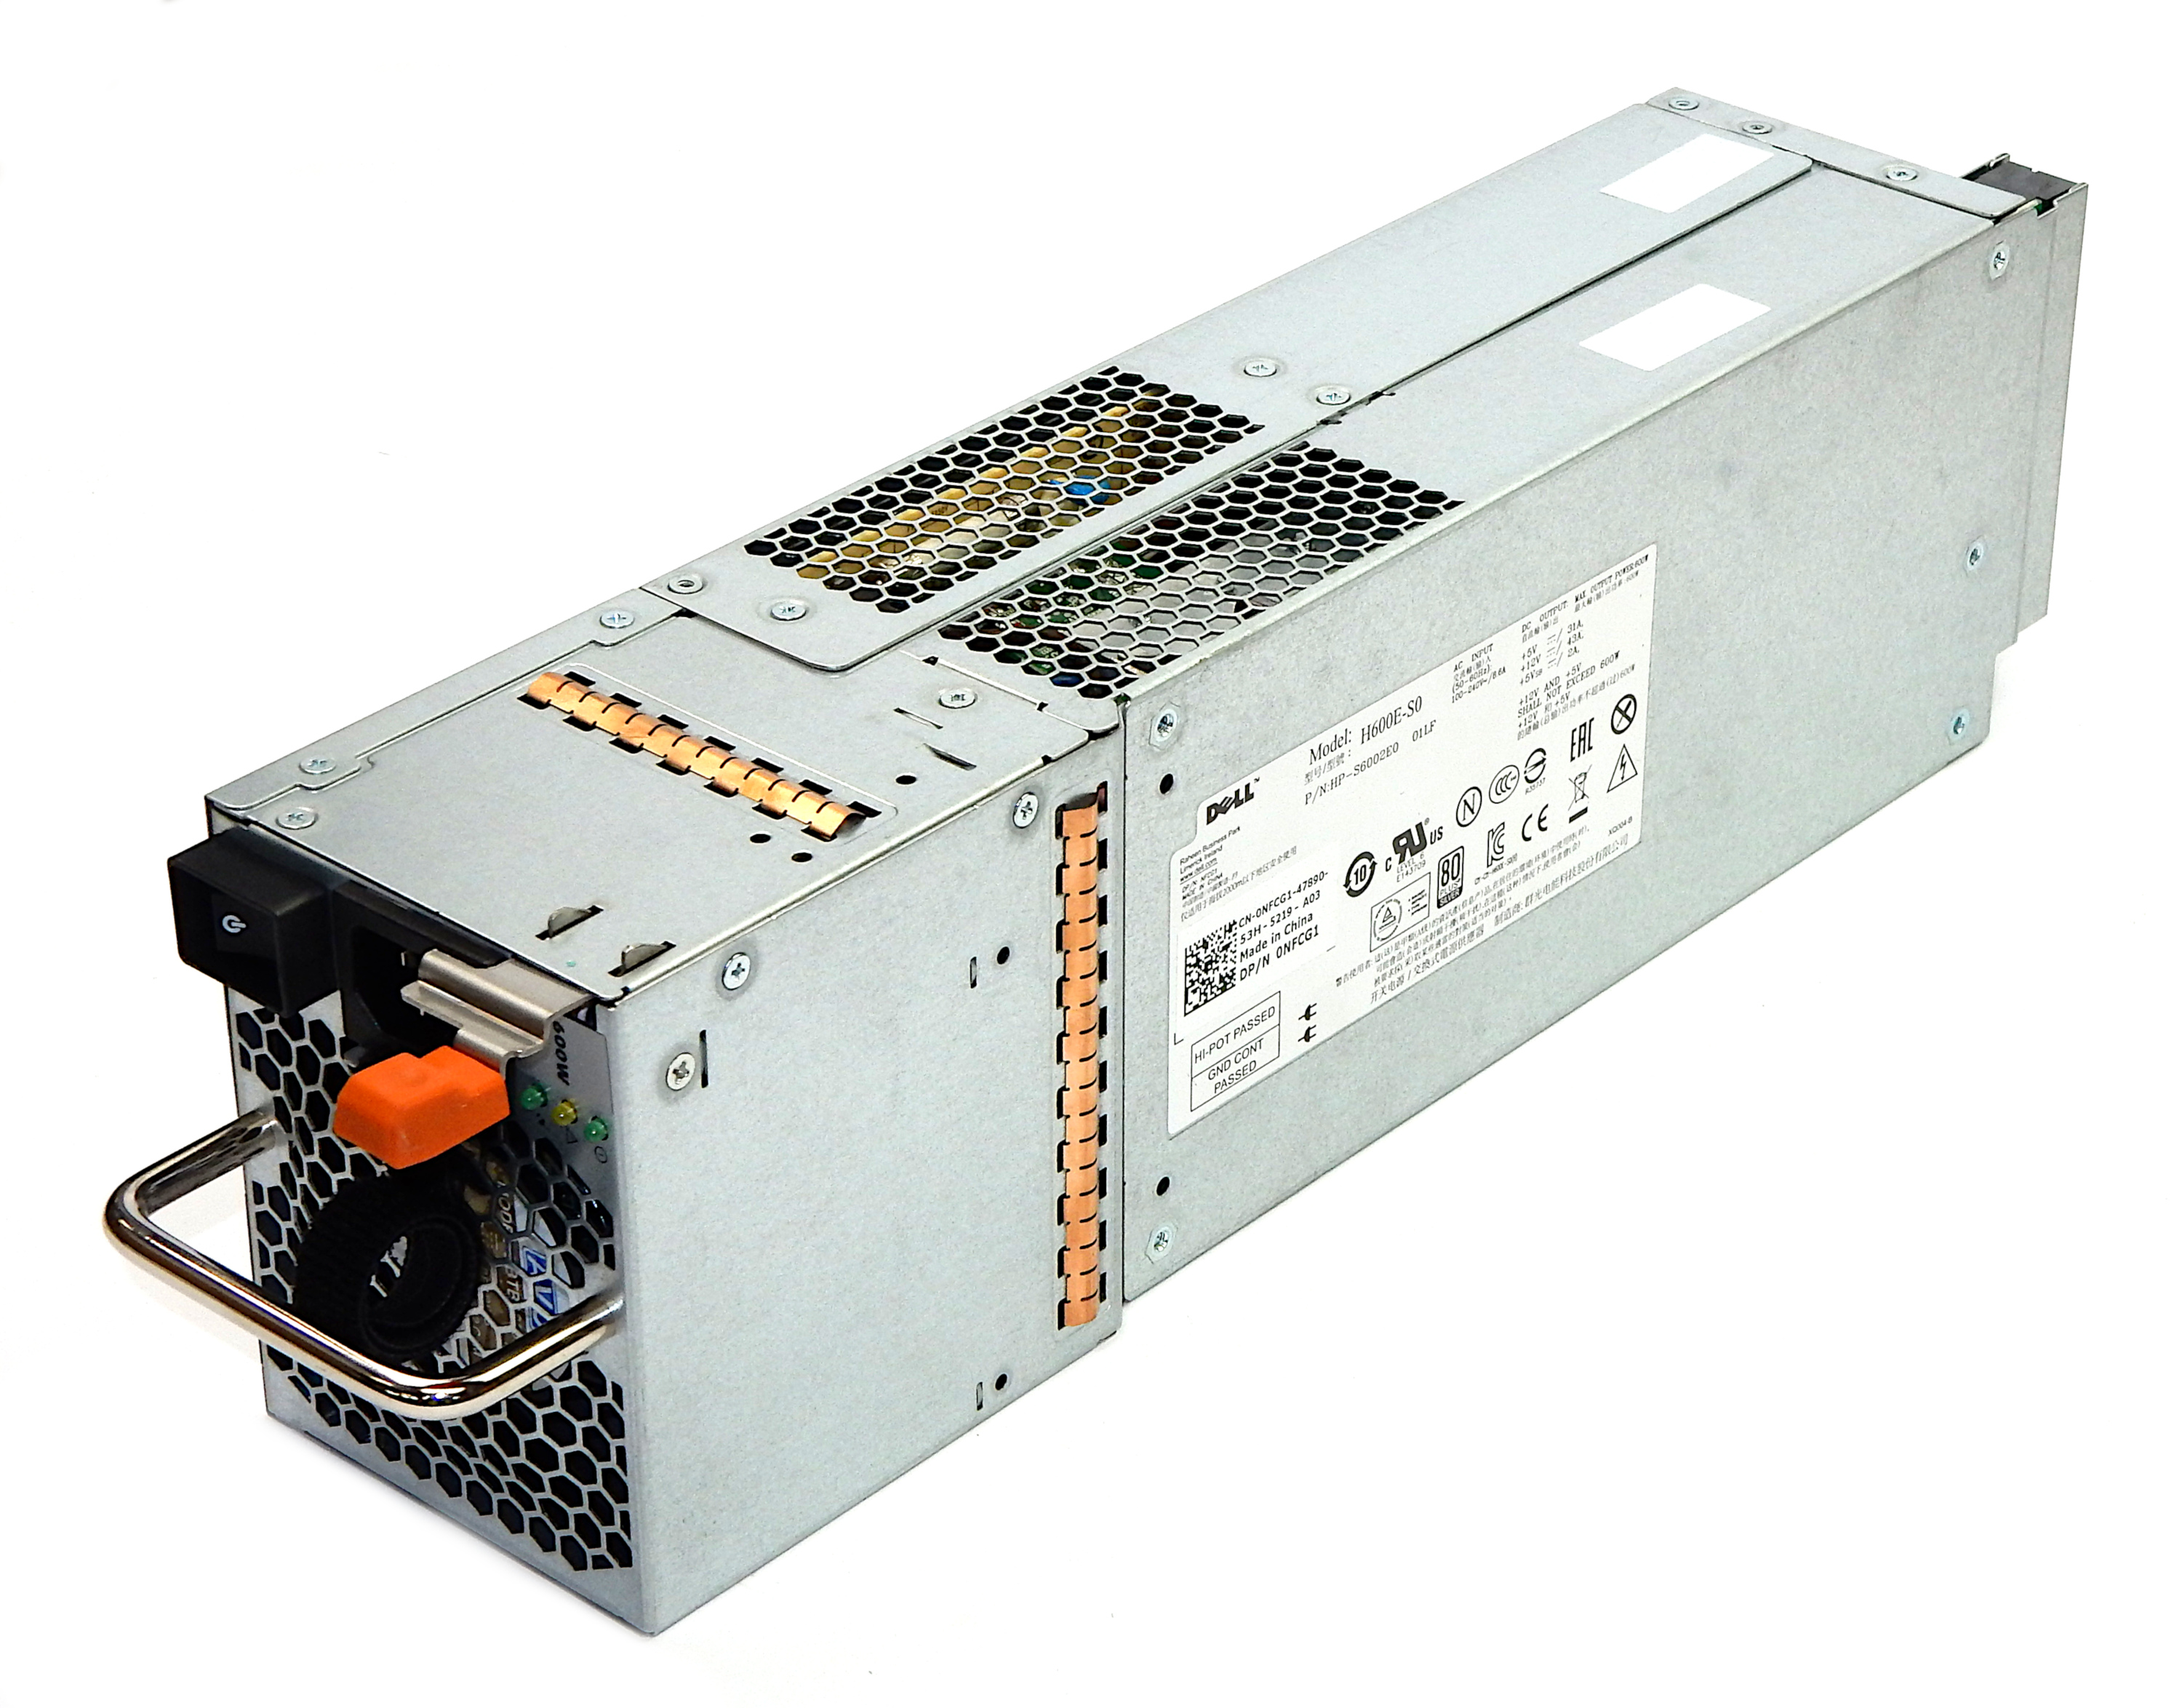 Dell NFCG1 PowerVault MD1220 600W Power Supply L600E-S0